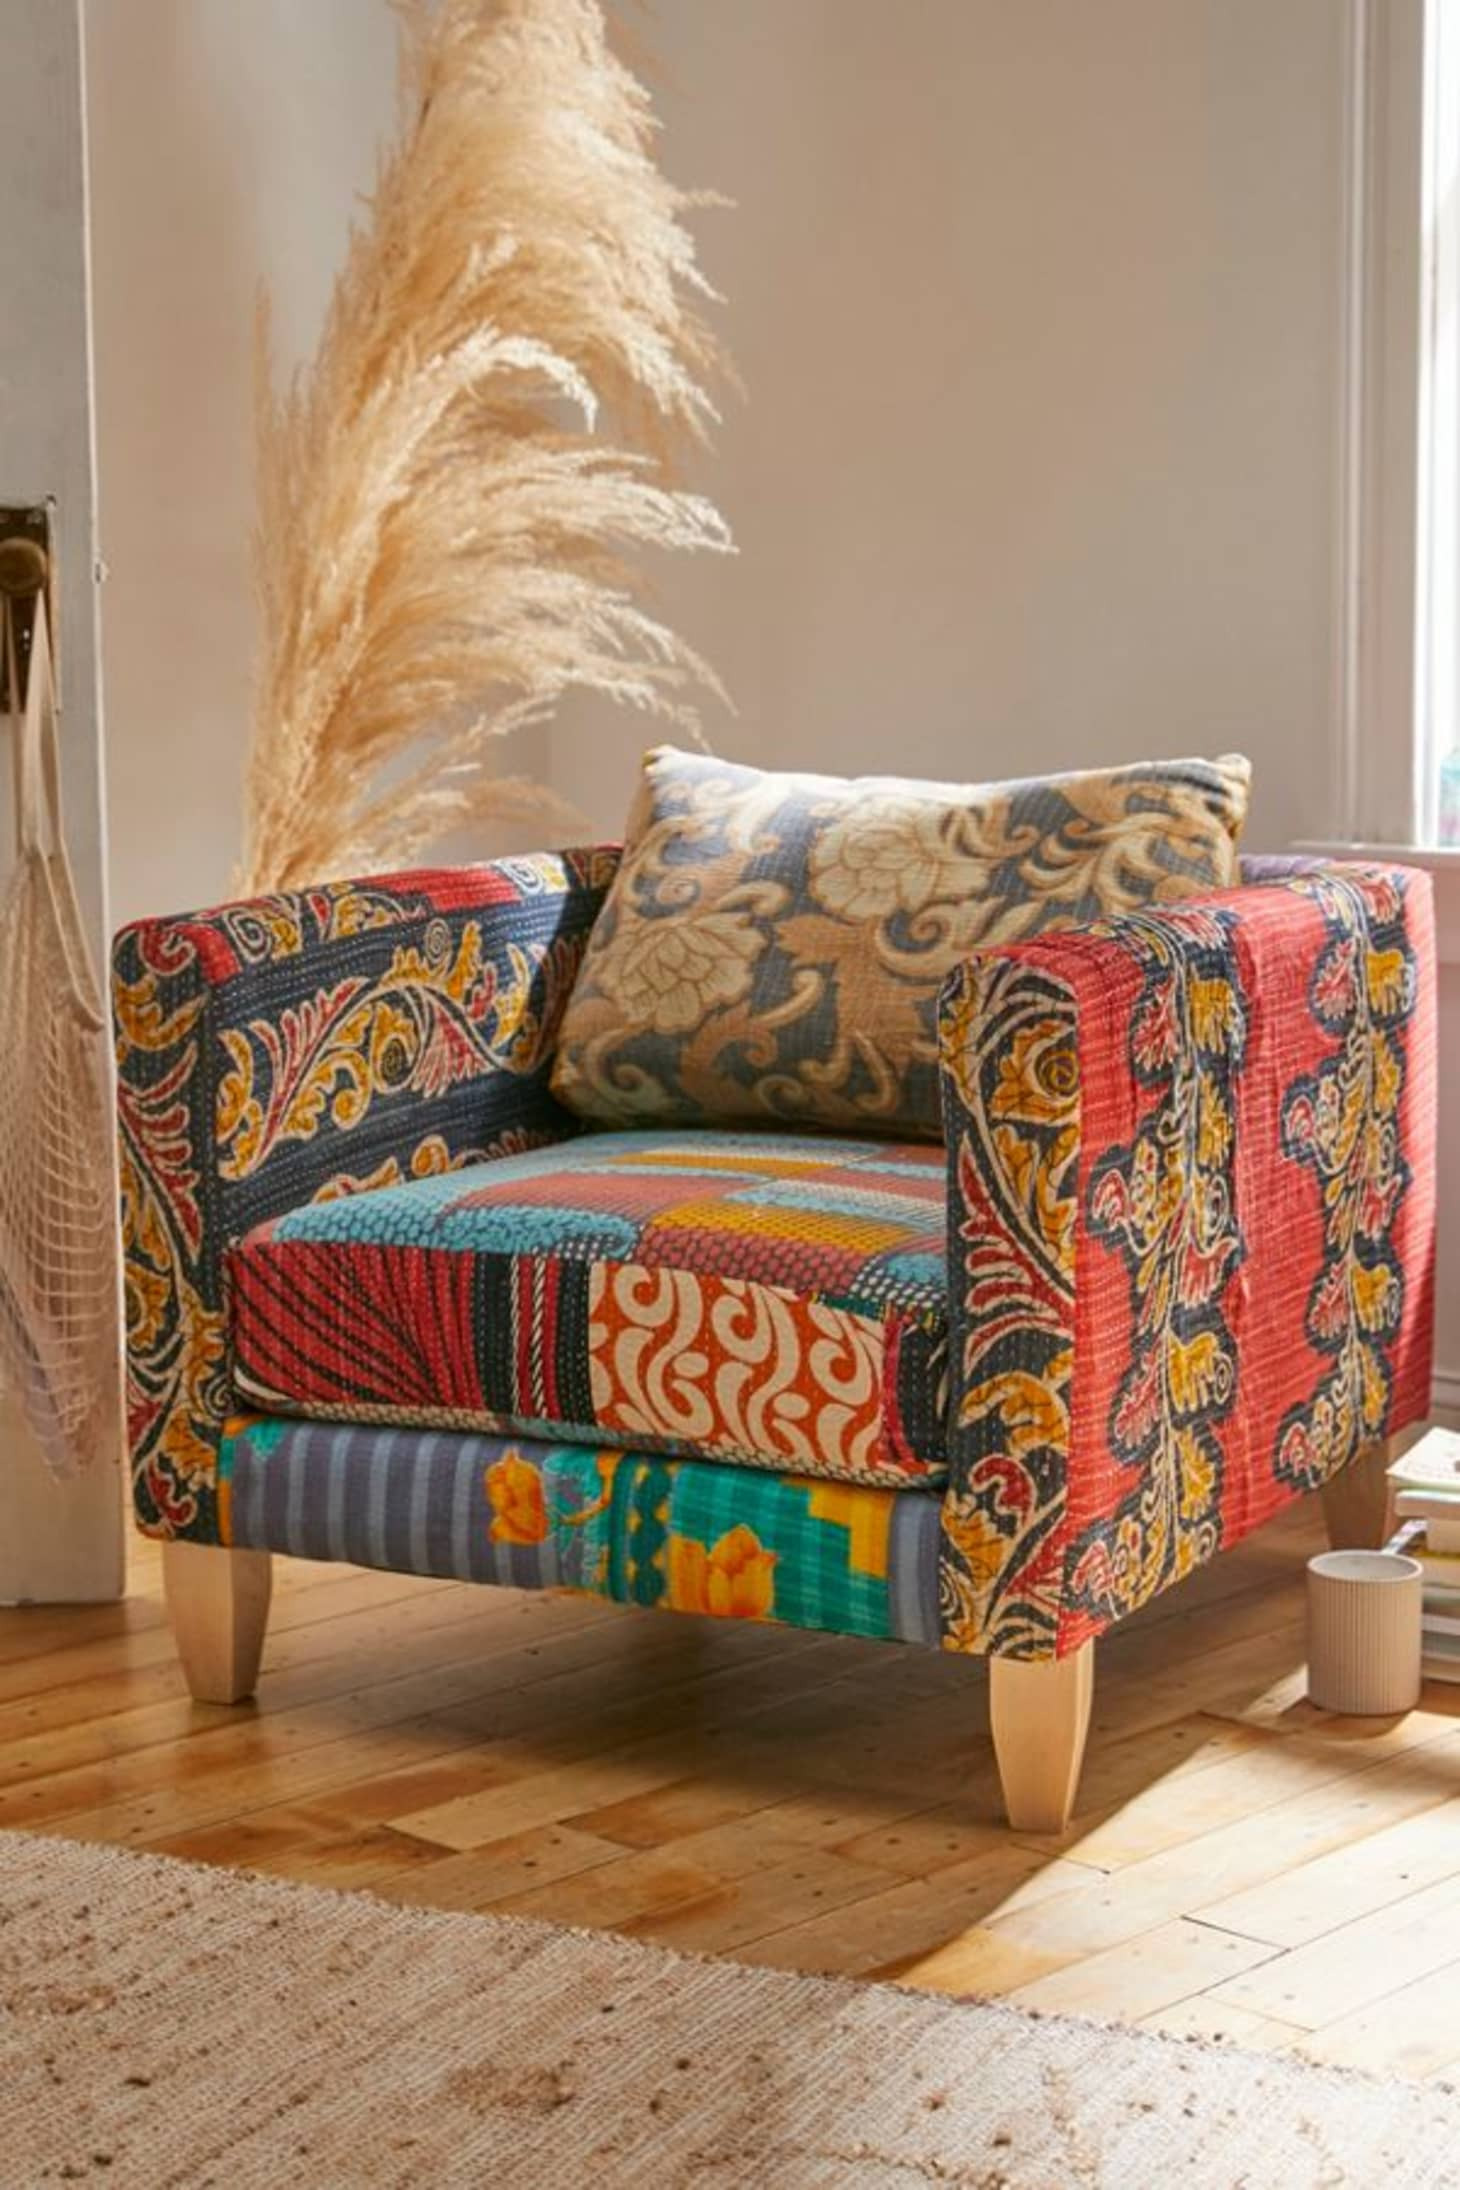 Cheap Antique Furniture for Sale Online Inspirational the Best Places to Buy Used and Vintage Furniture Line